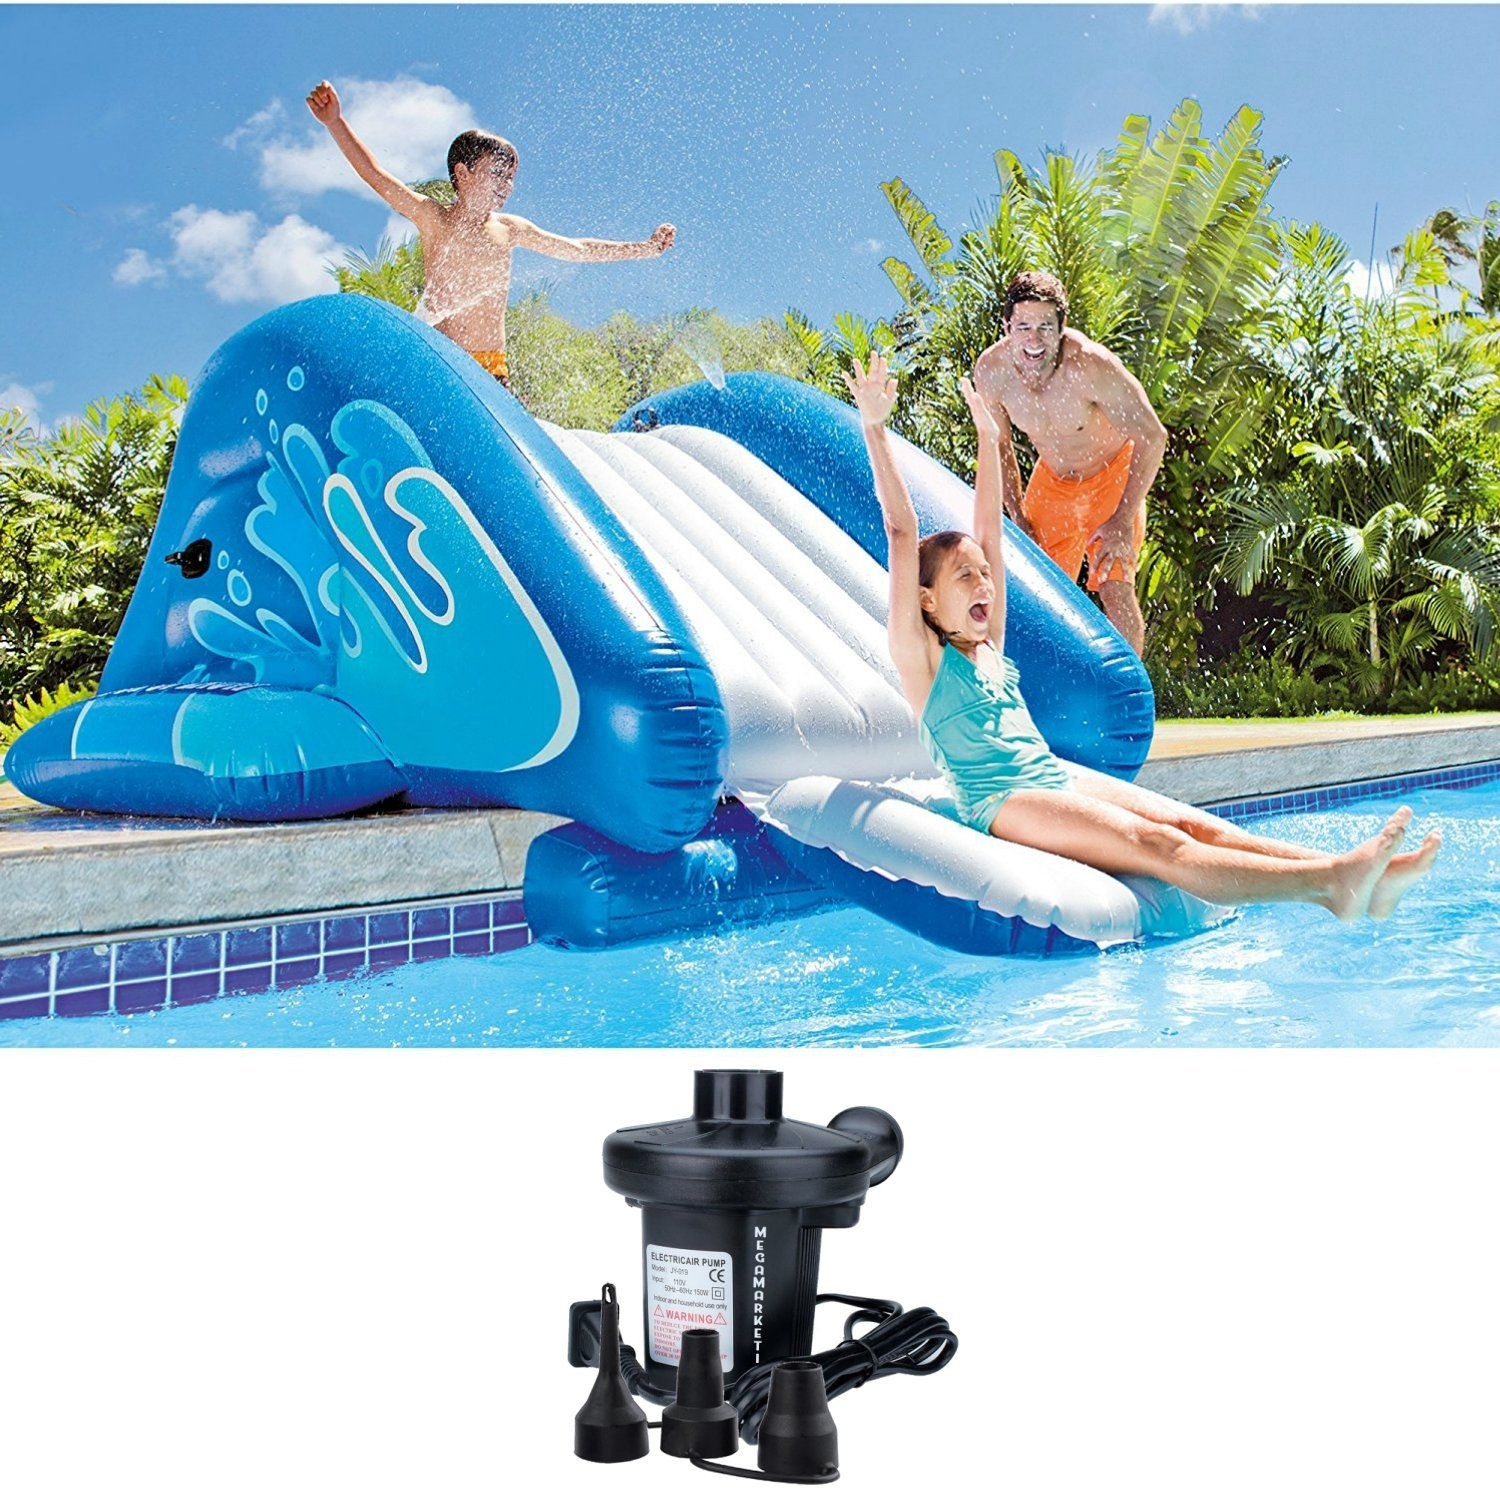 Click here to buy Intex HUGE Inflatable Swimming Pool Waterslide Play Center with Water Sprayer and Electric Air Pump by Quality Brand.